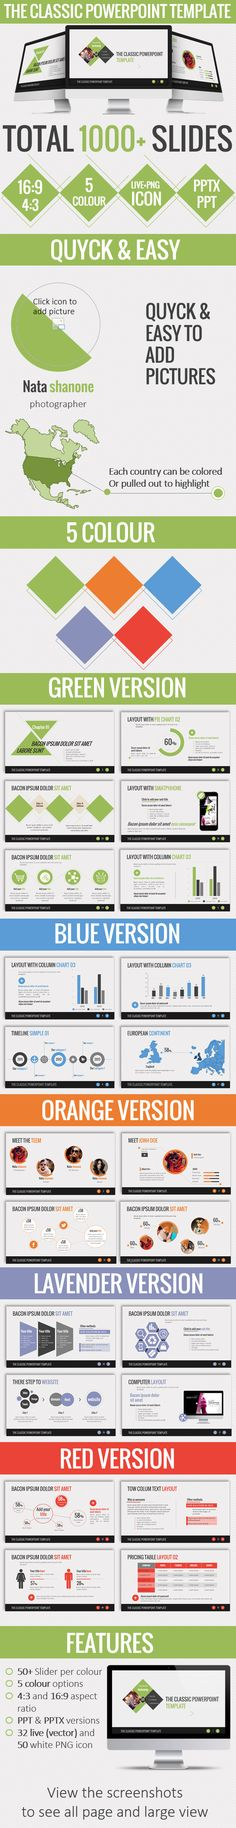 powerpoint designcreative youngers for we need a powerpoint to, Modern powerpoint